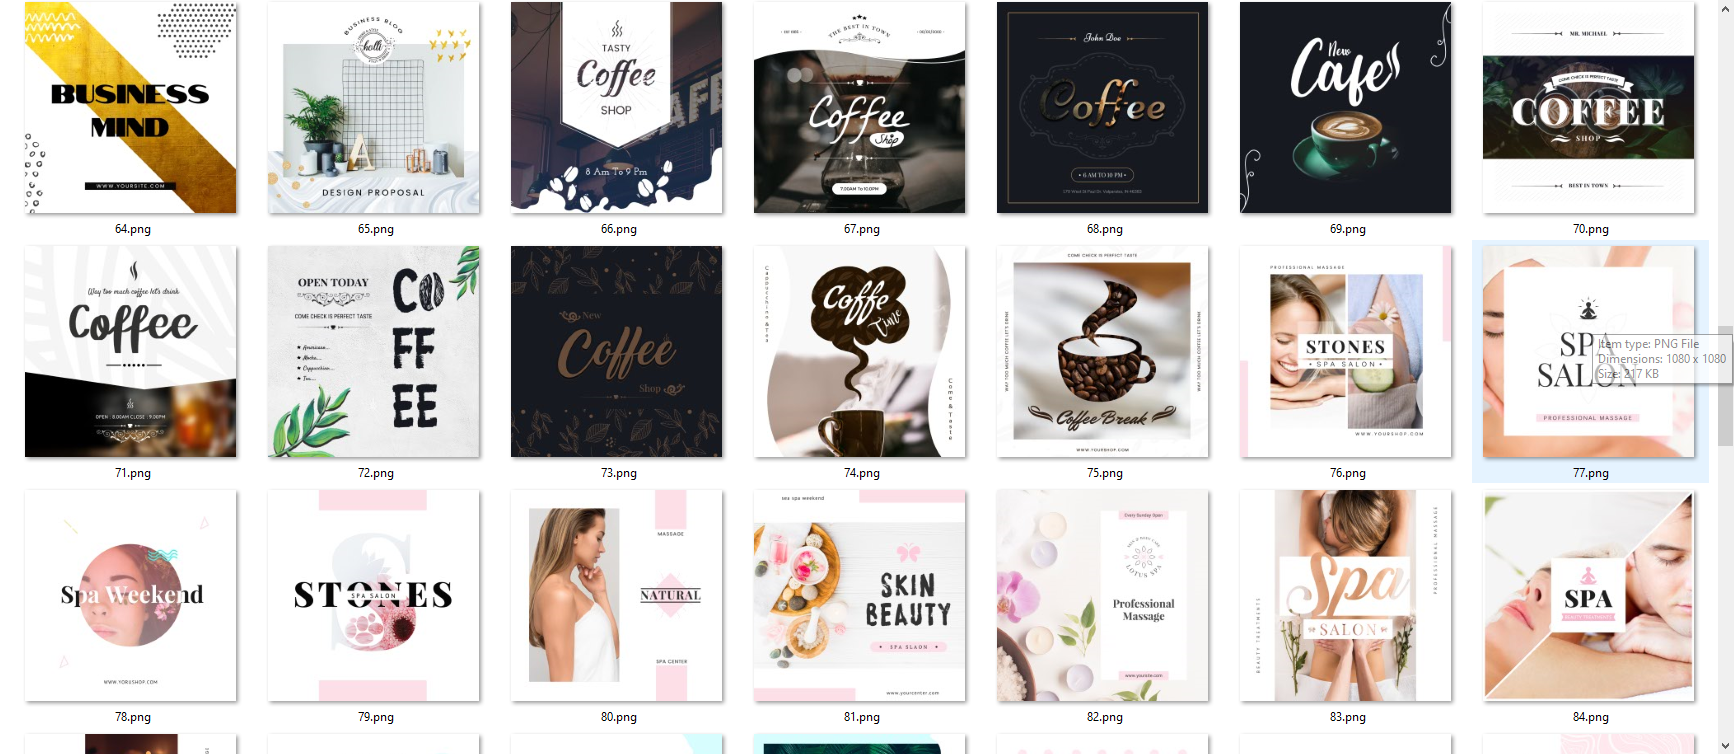 Social Media Instagram Banners Collection is the largest collection of professional open source banners psd